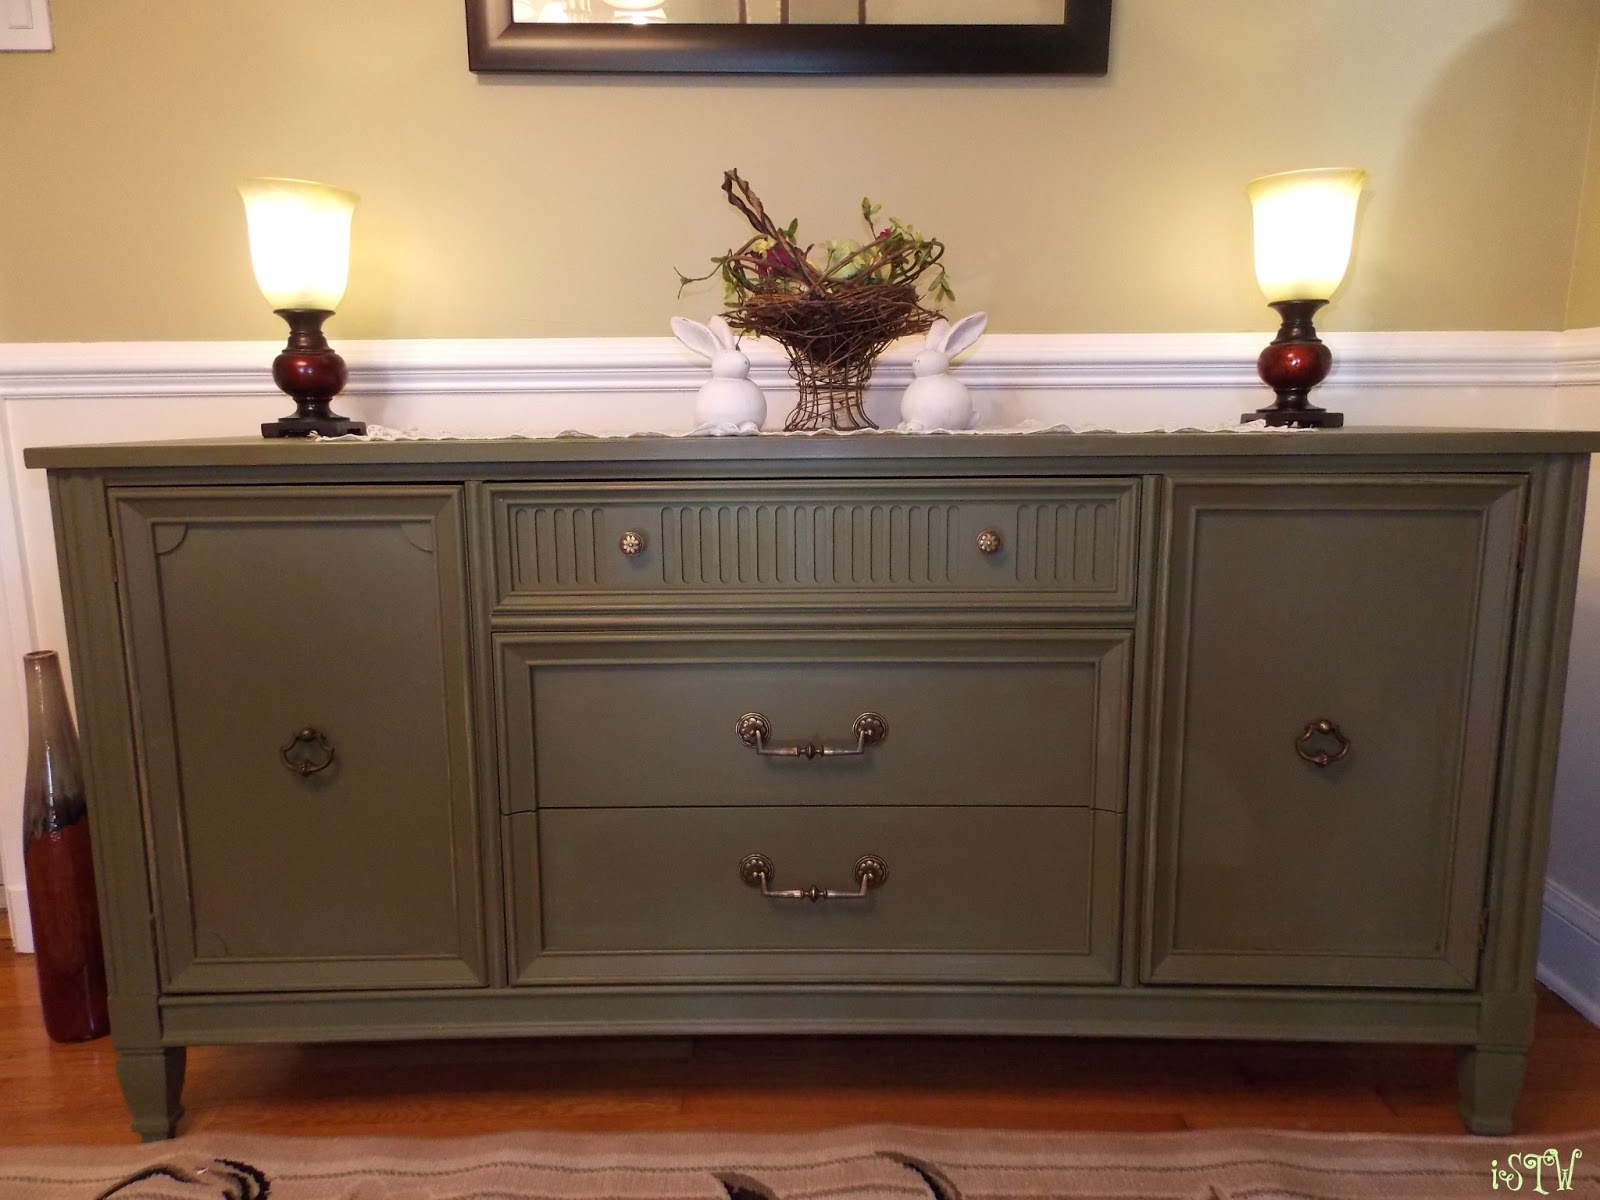 dining room credenza mid century modern credenza or dining room sideboard buffet table credenza cupboard bar